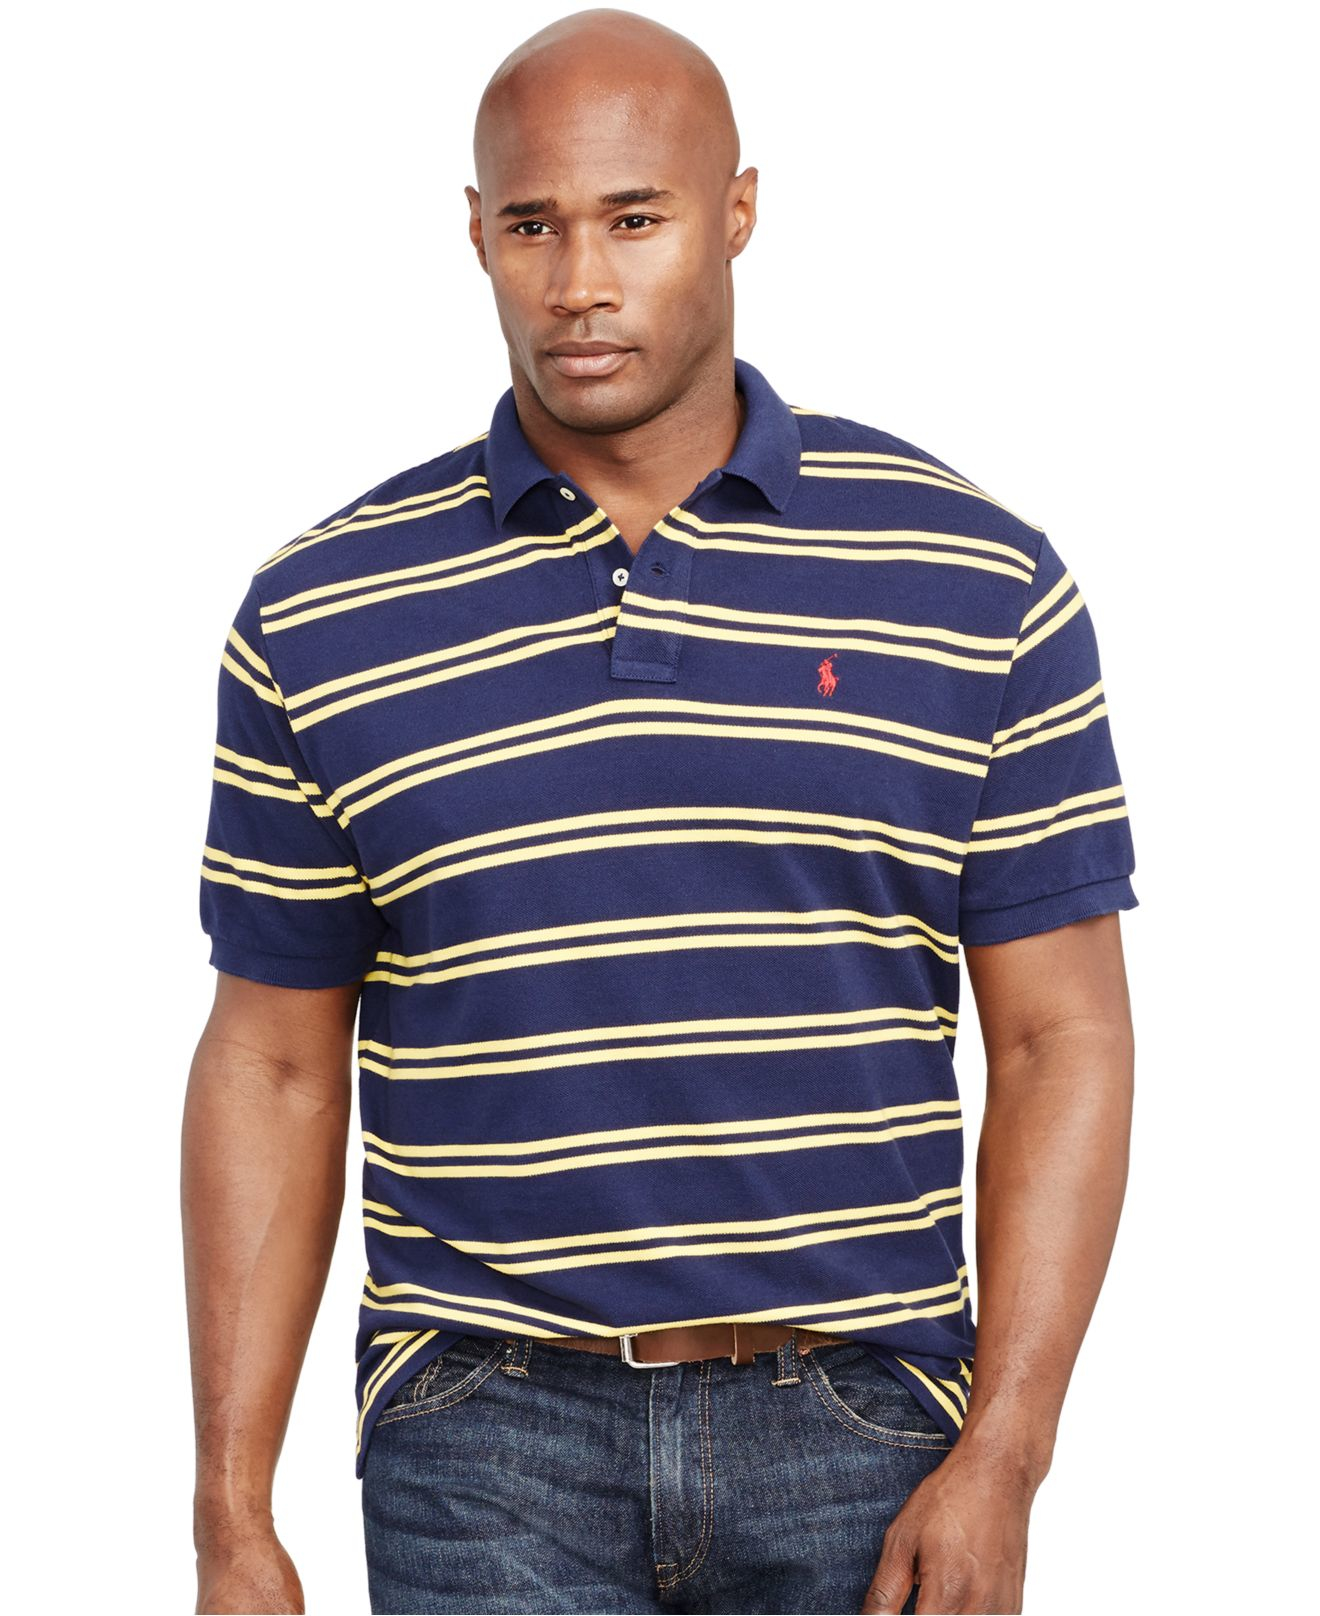 Polo ralph lauren big and tall custom fit striped mesh for Big and tall custom polo shirts